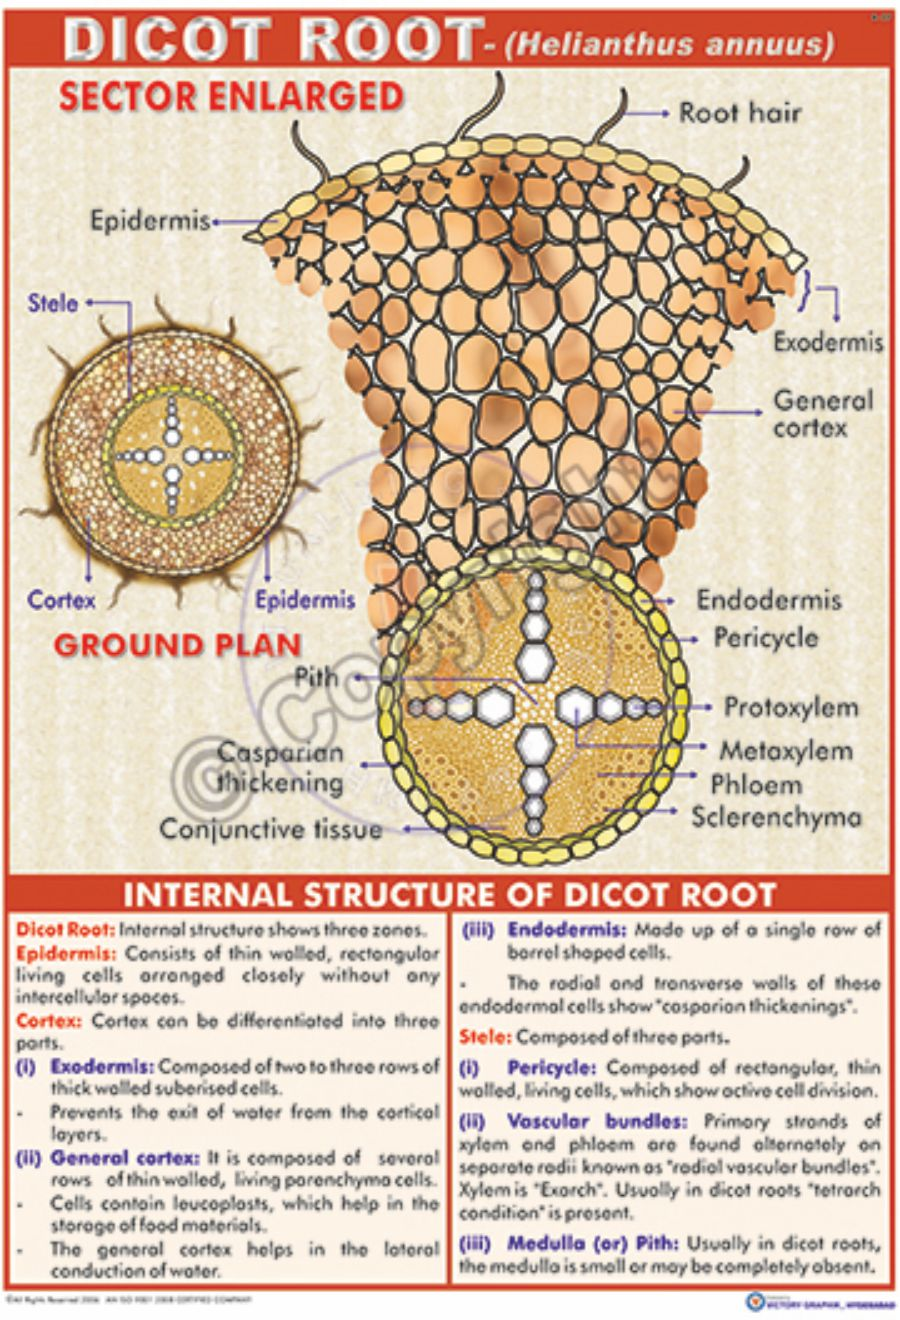 Victory Graphik | B-27 Dicot Root (Helianthus Annuus)